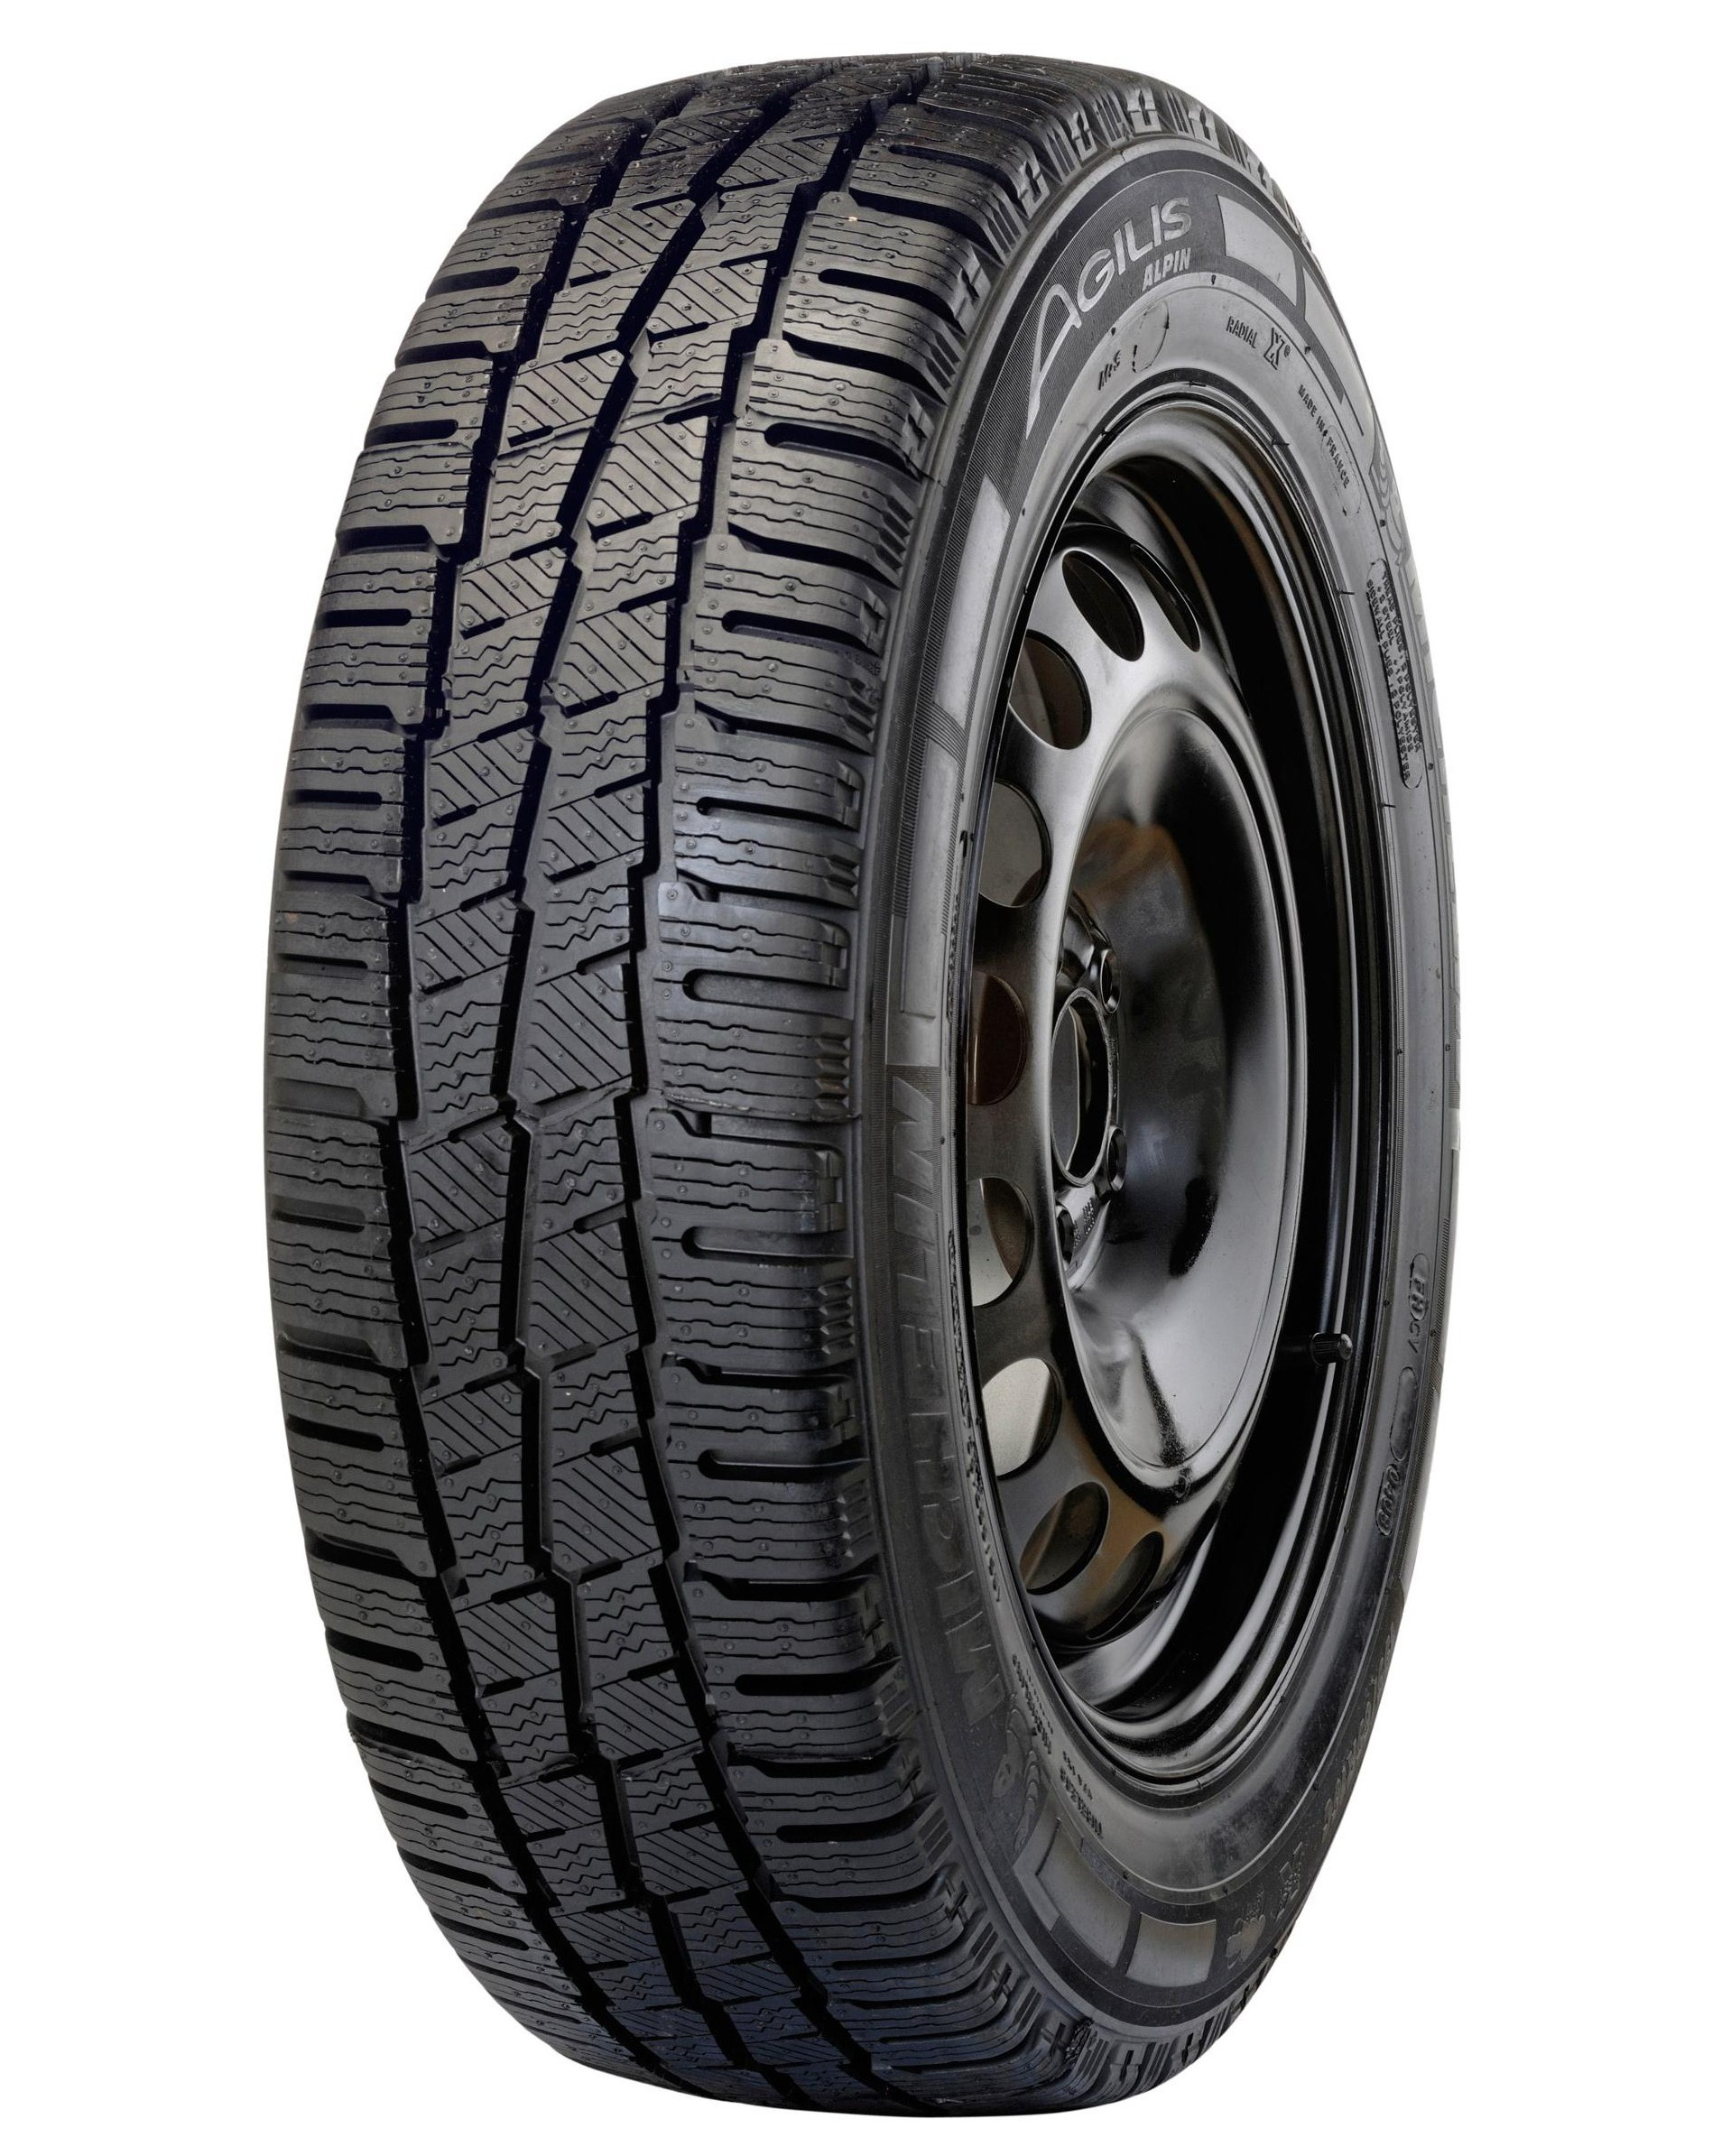 215/65 R16C [109/107] R AGILIS ALPIN - MICHELIN